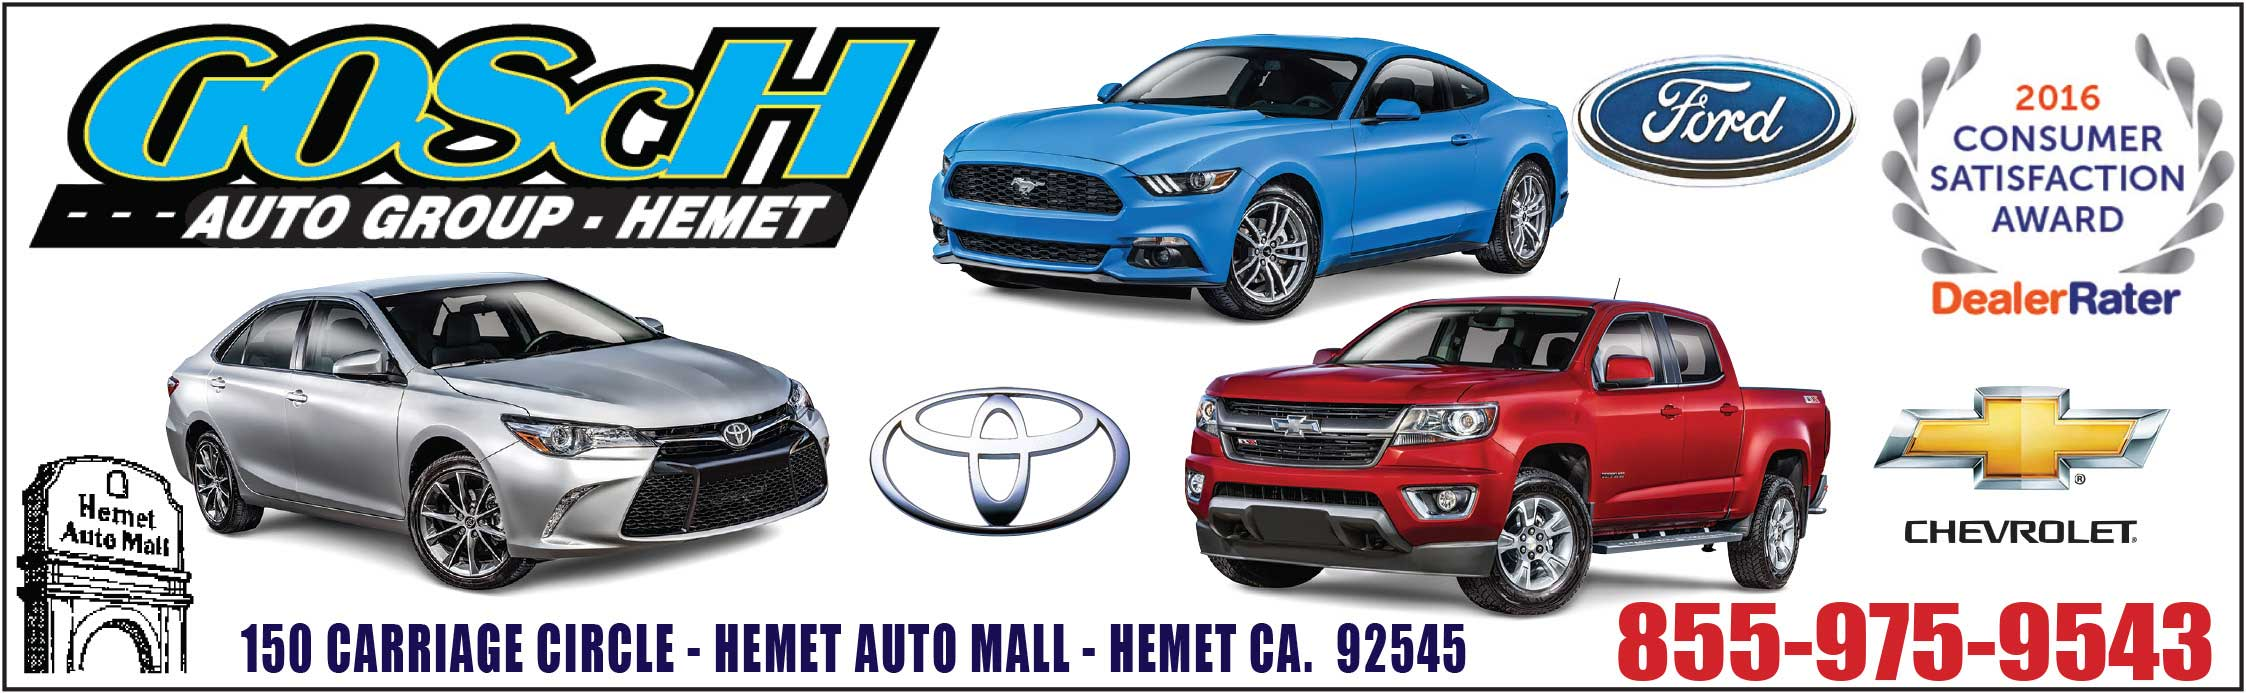 New and used cars businesses easy ad hemets largest advertiser find new and used car businesses in hemet and the san jacinto valley ca solutioingenieria Choice Image